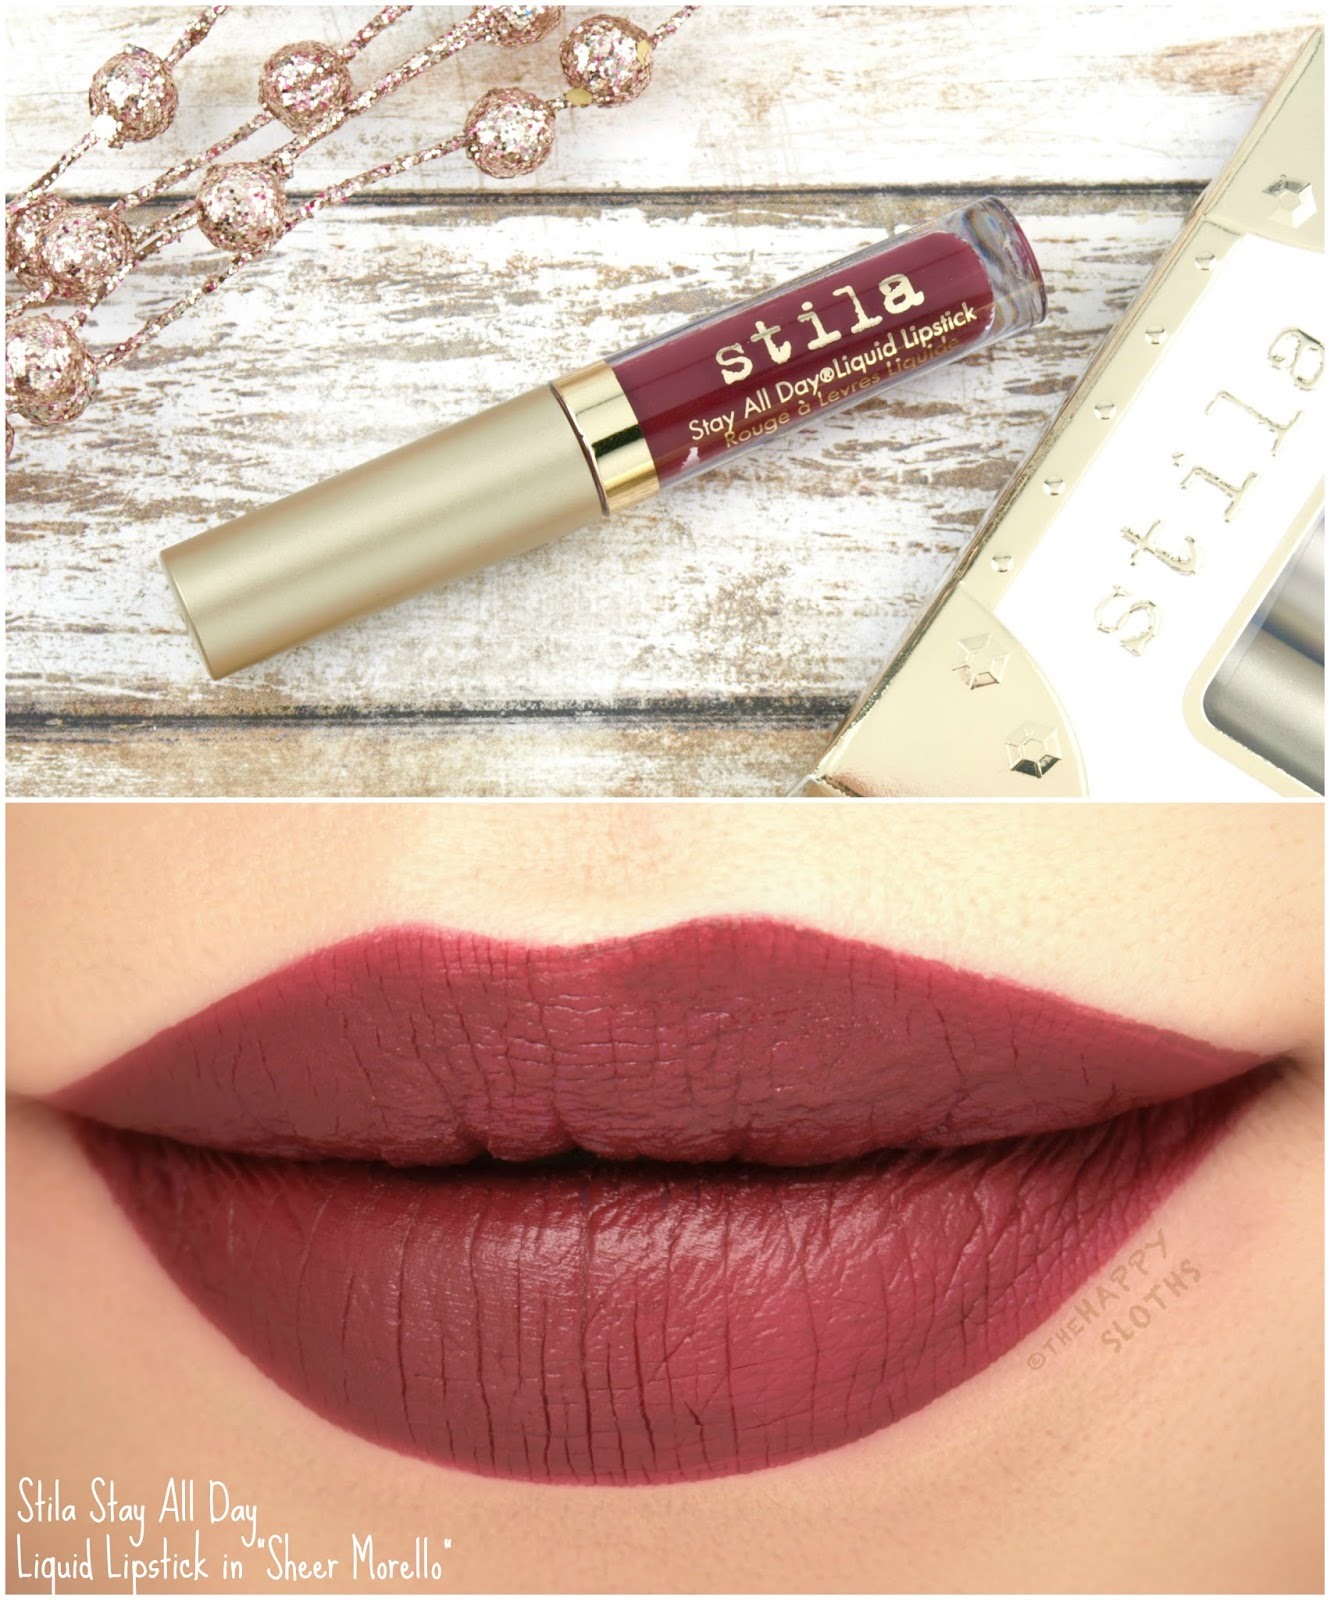 "Stila Stay All Day Liquid Lipstick in ""Sheer Morello"": Review and Swatches"